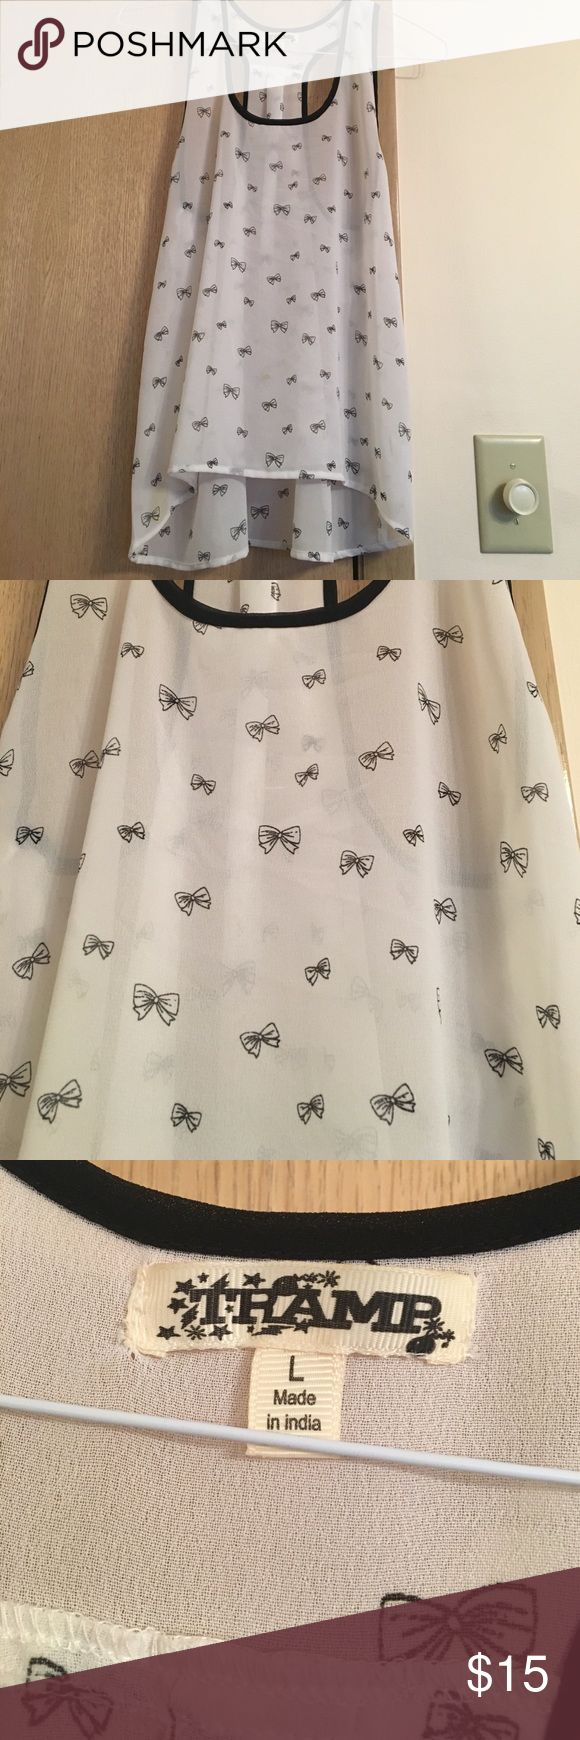 Thamp bow tank top Large in kids/juniors perfect for a breezy spring or summer day to wear outside for a party or picinic thamp Tops Tank Tops